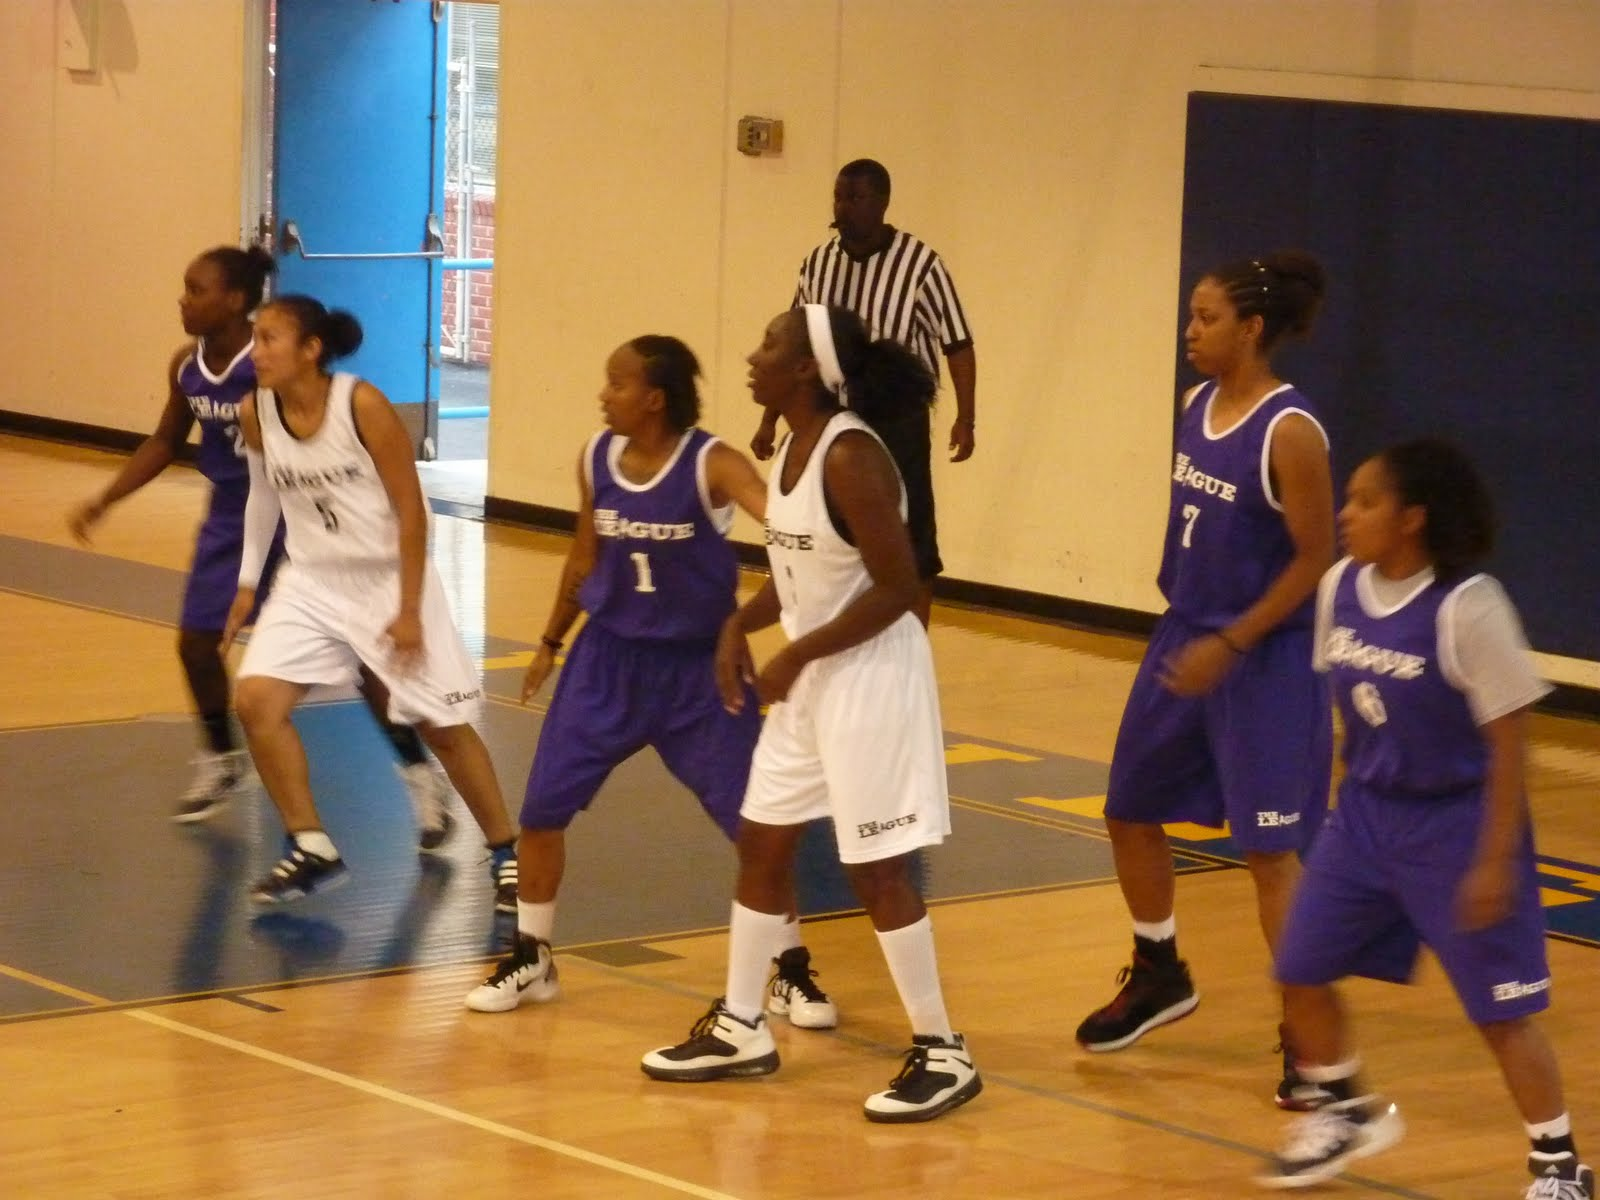 b61ab33990f Team Purple (dark uniforms) and Team Hustle all brace for the pass inside.